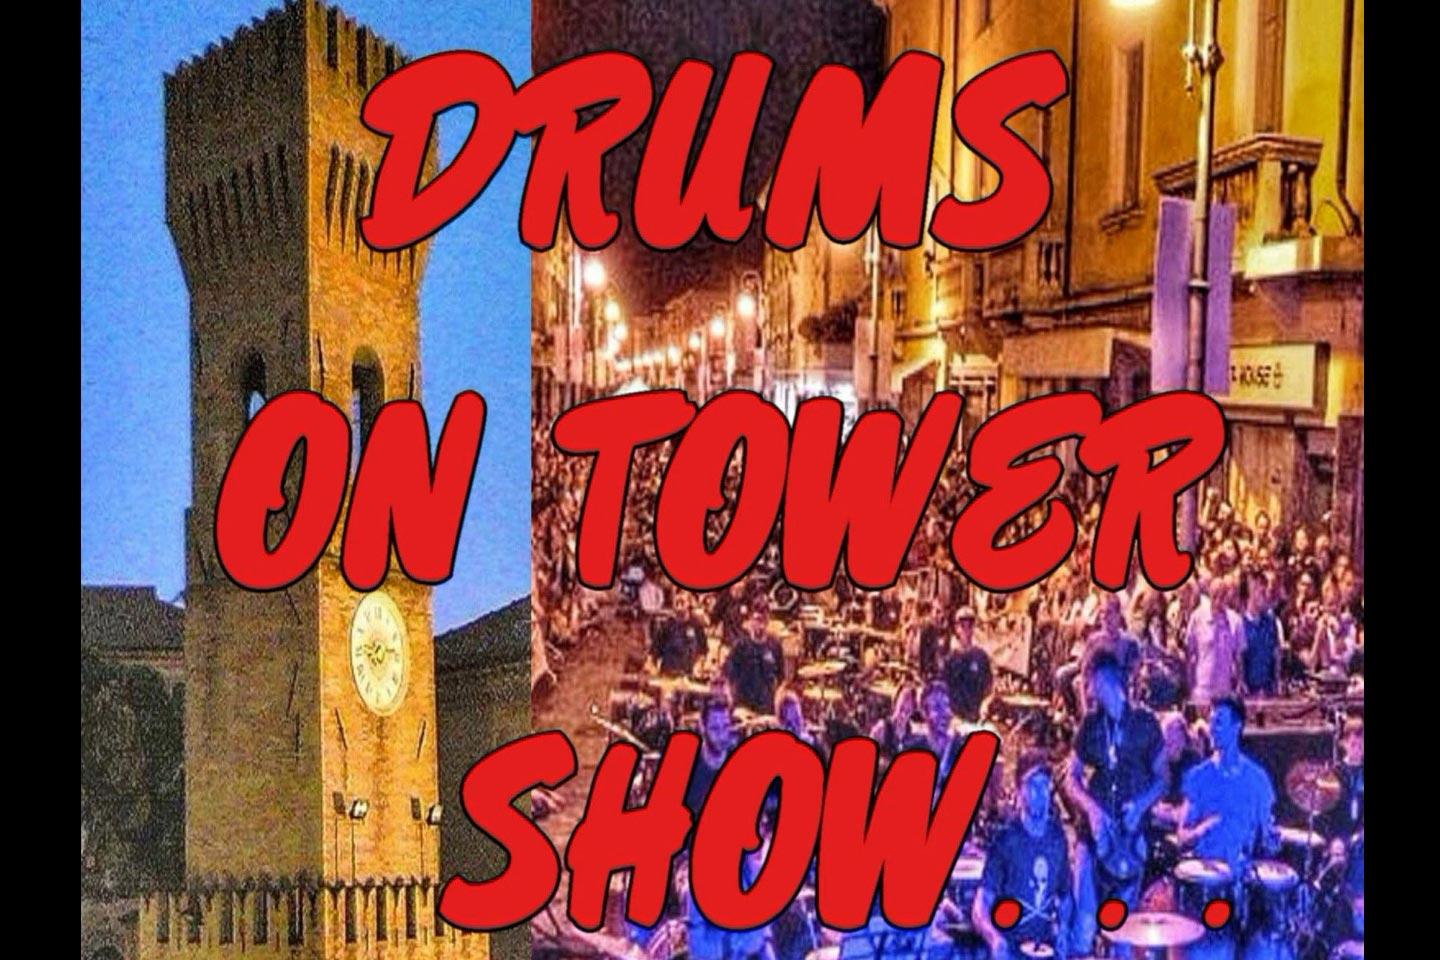 drums on tower ostra